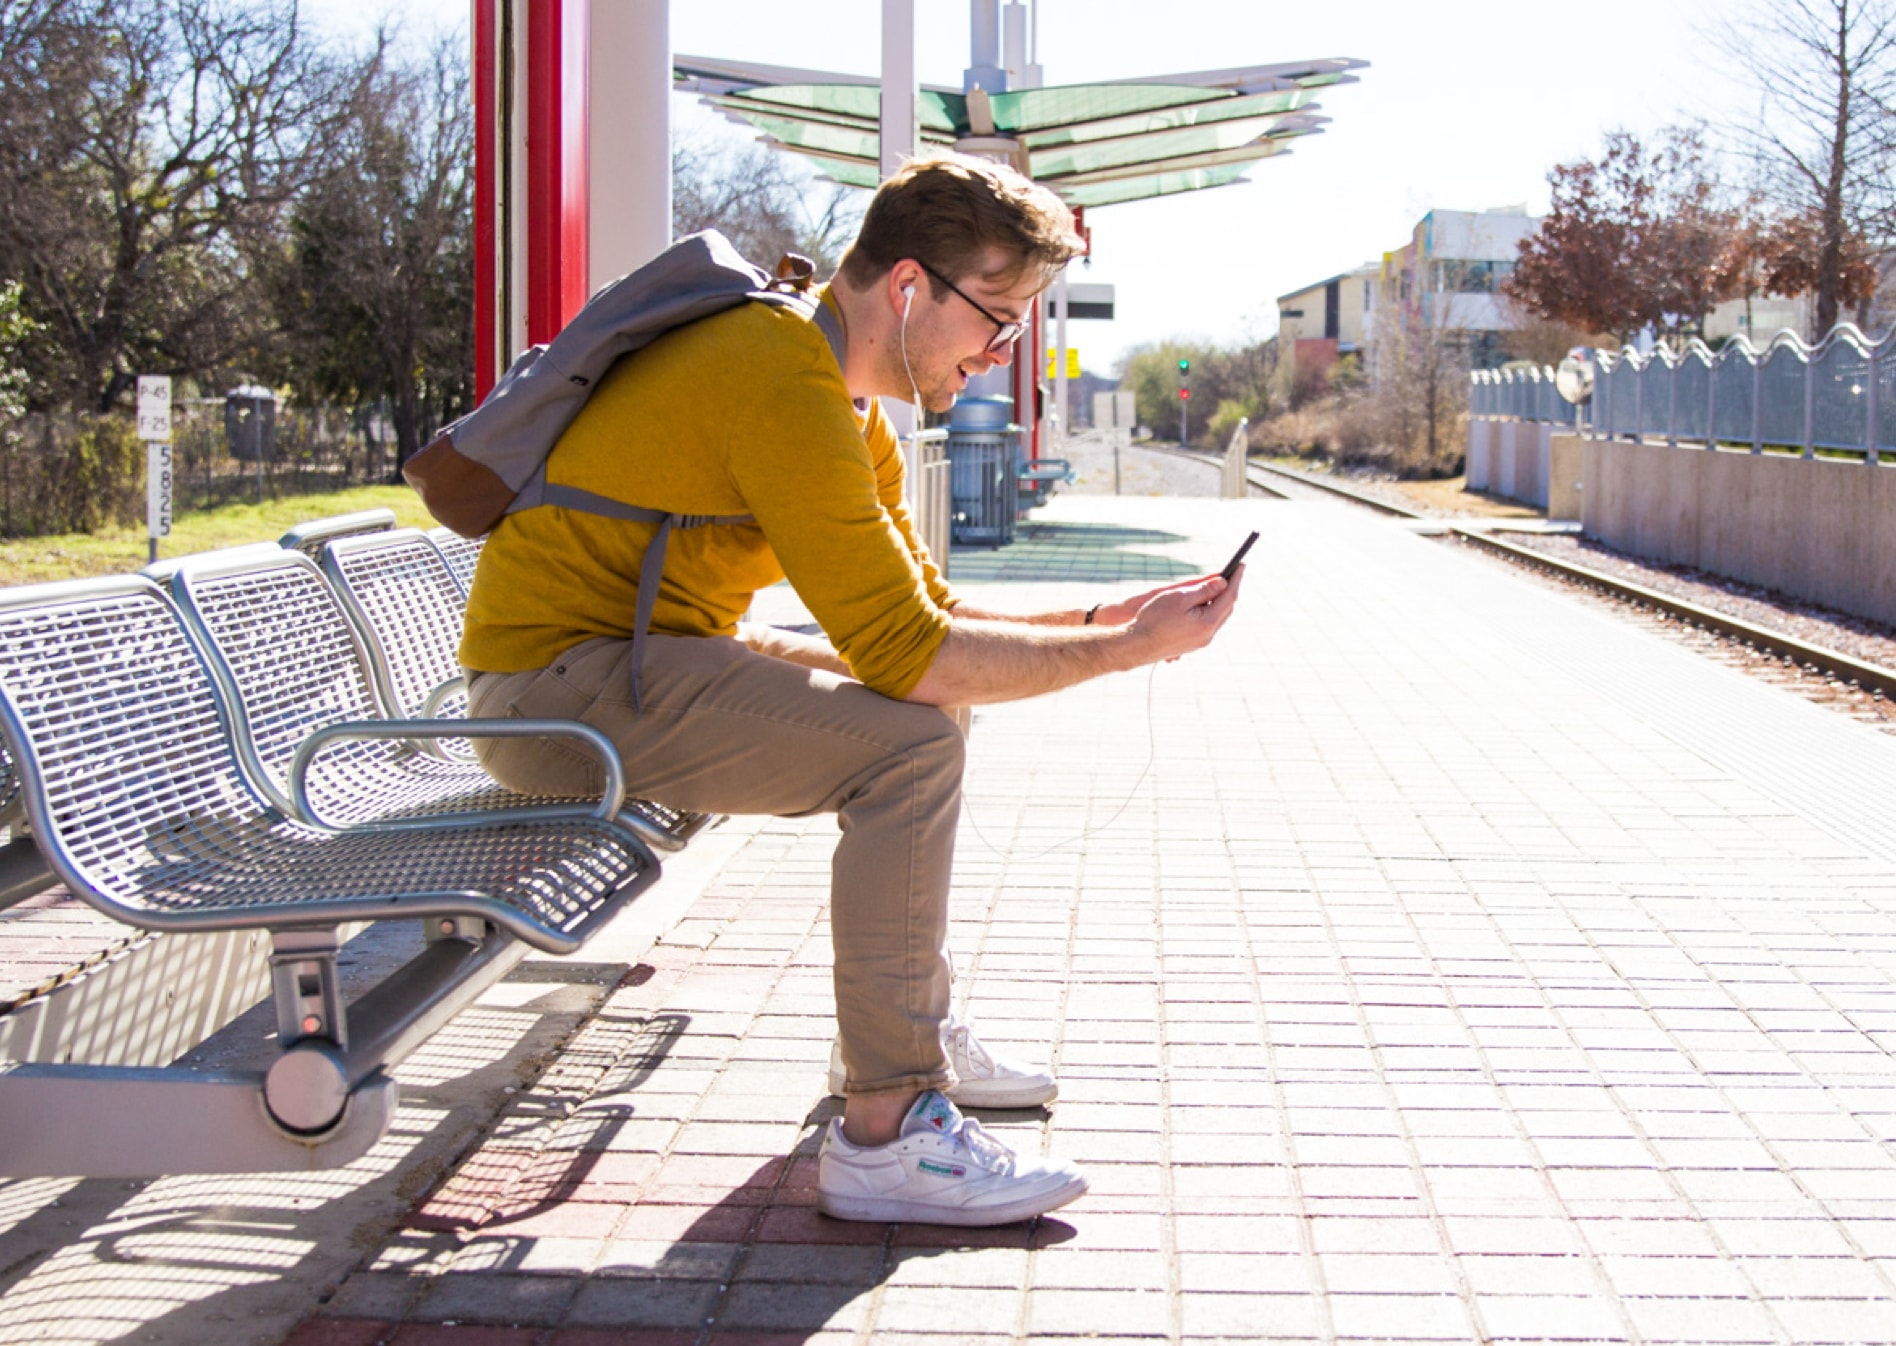 A man sitting on a bench in the city, in a video conference, using a cellphone.